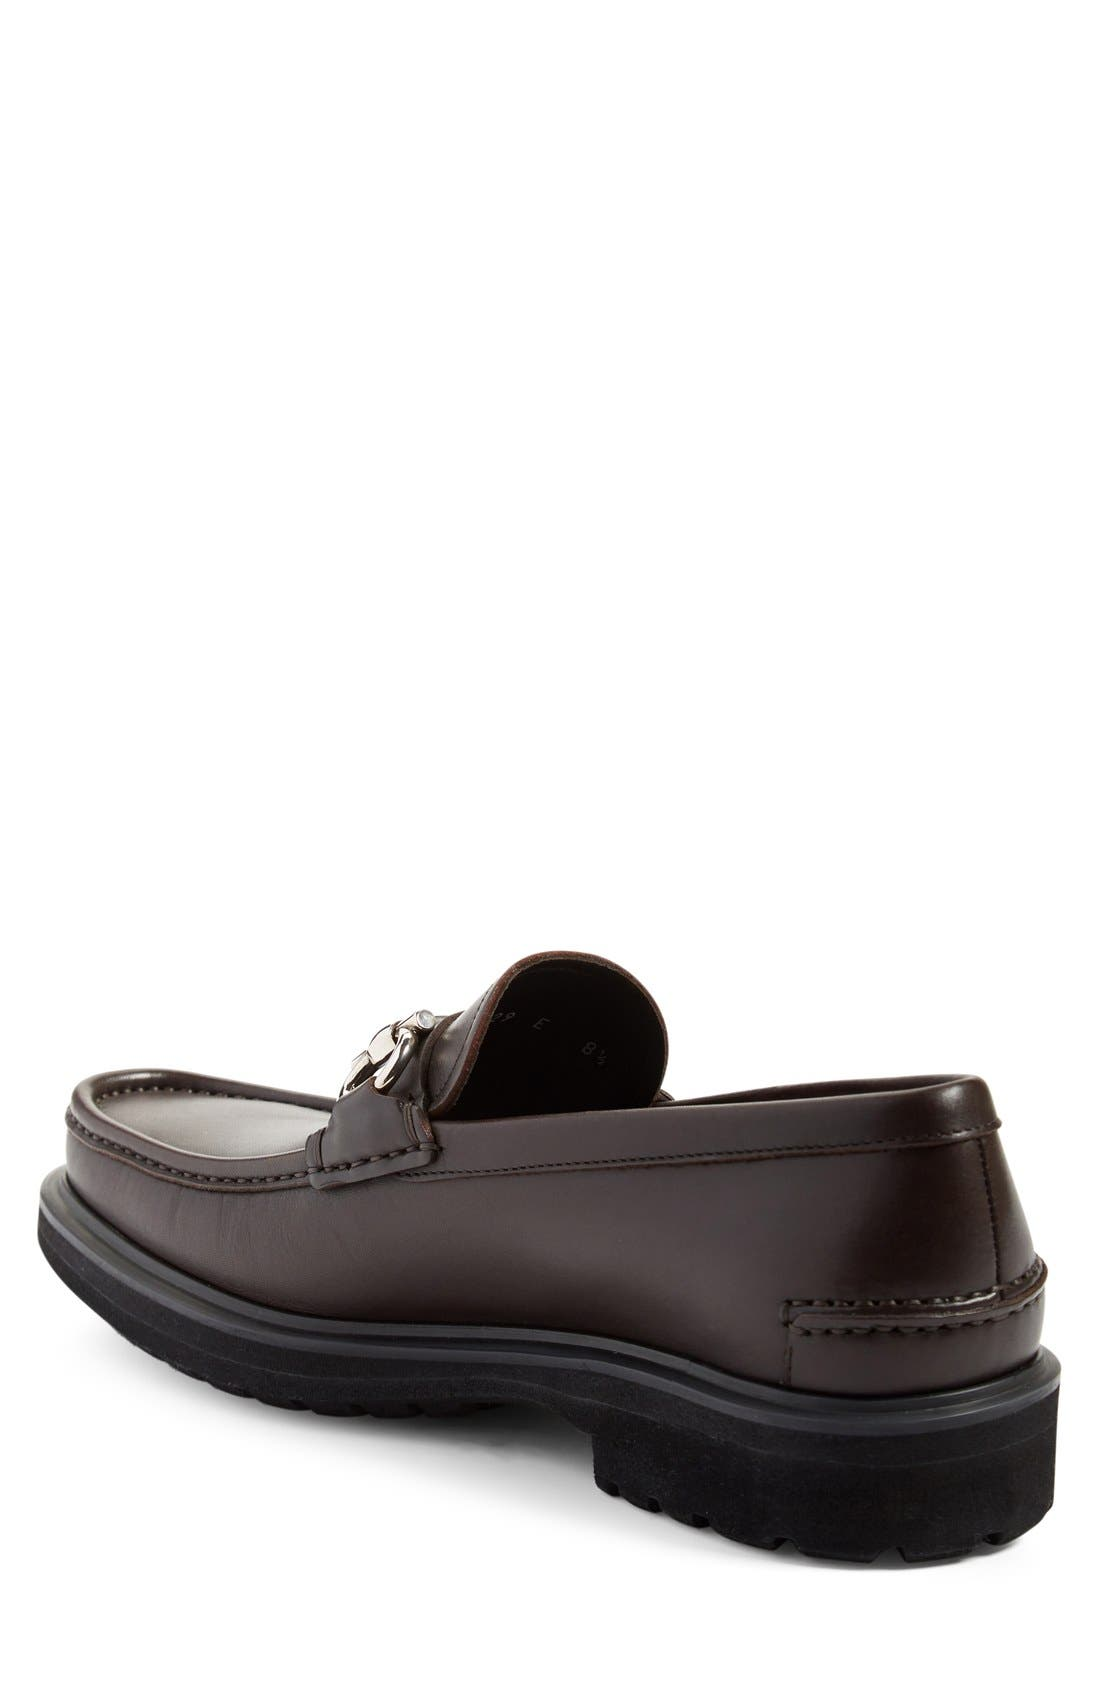 Glasgow Bit Loafer,                             Alternate thumbnail 2, color,                             Hickory